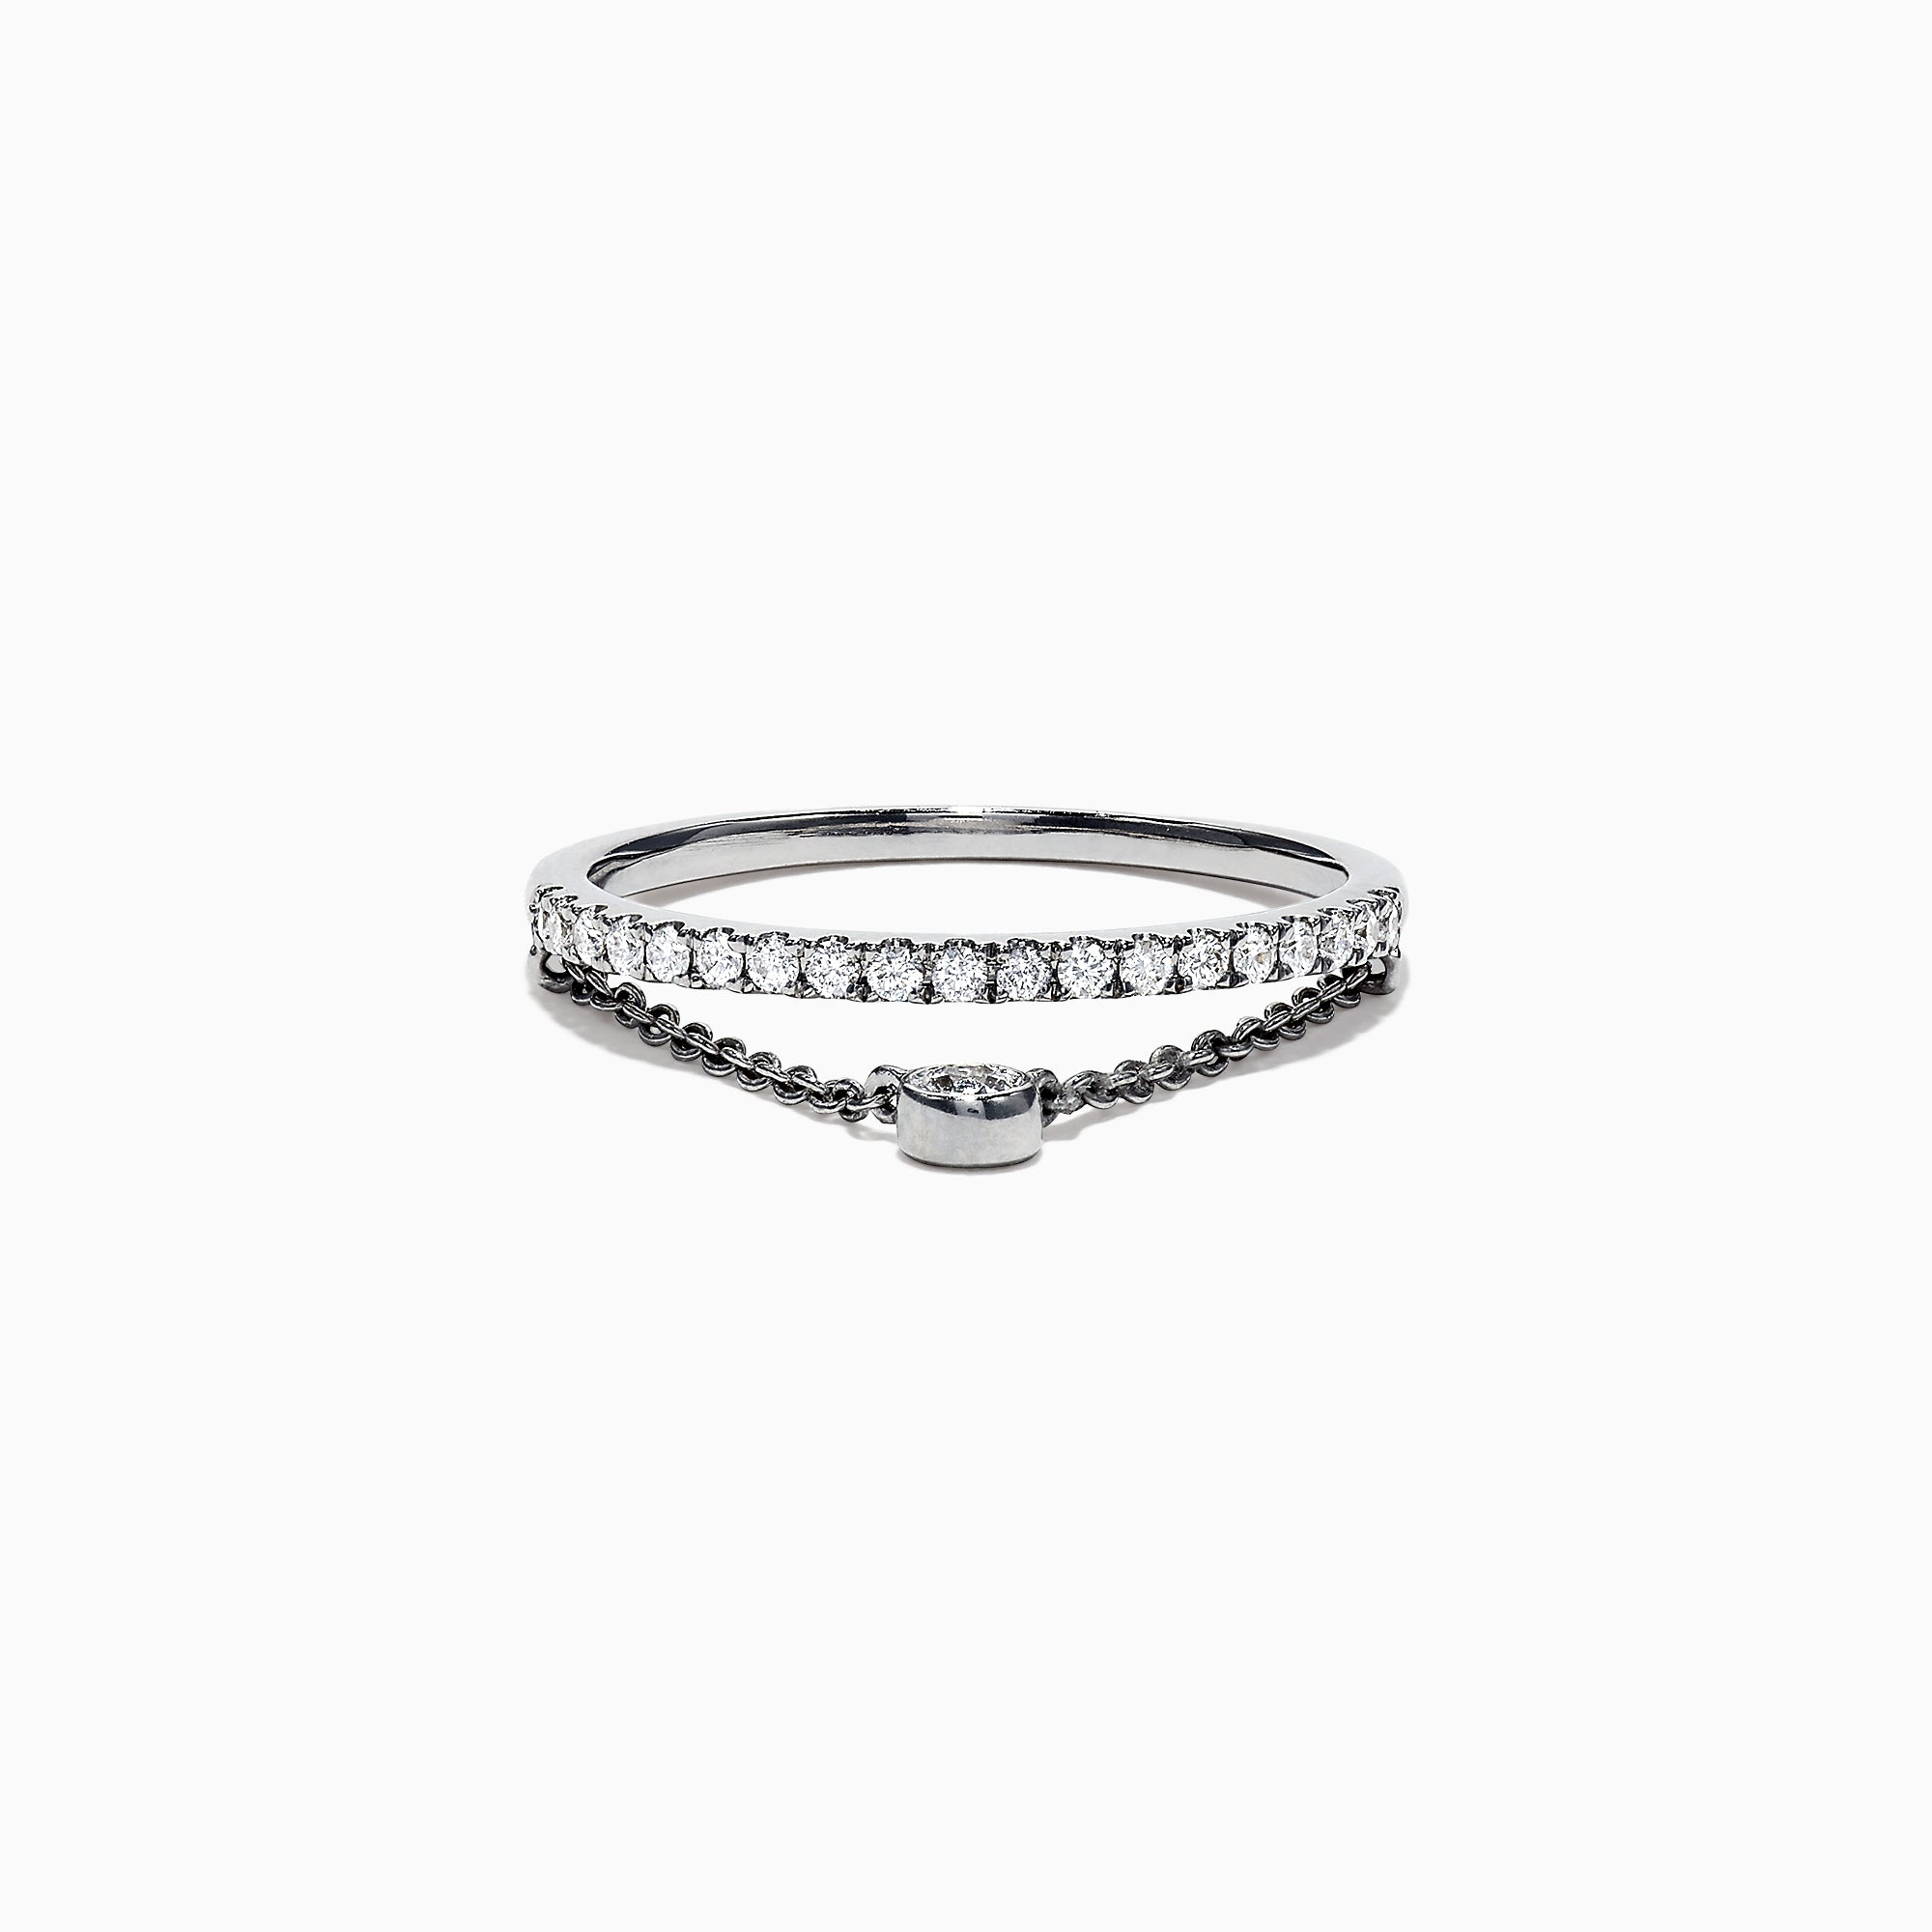 Effy Pave Classica 14K White Gold Diamond Band & Chain Ring, 0.24 TCW